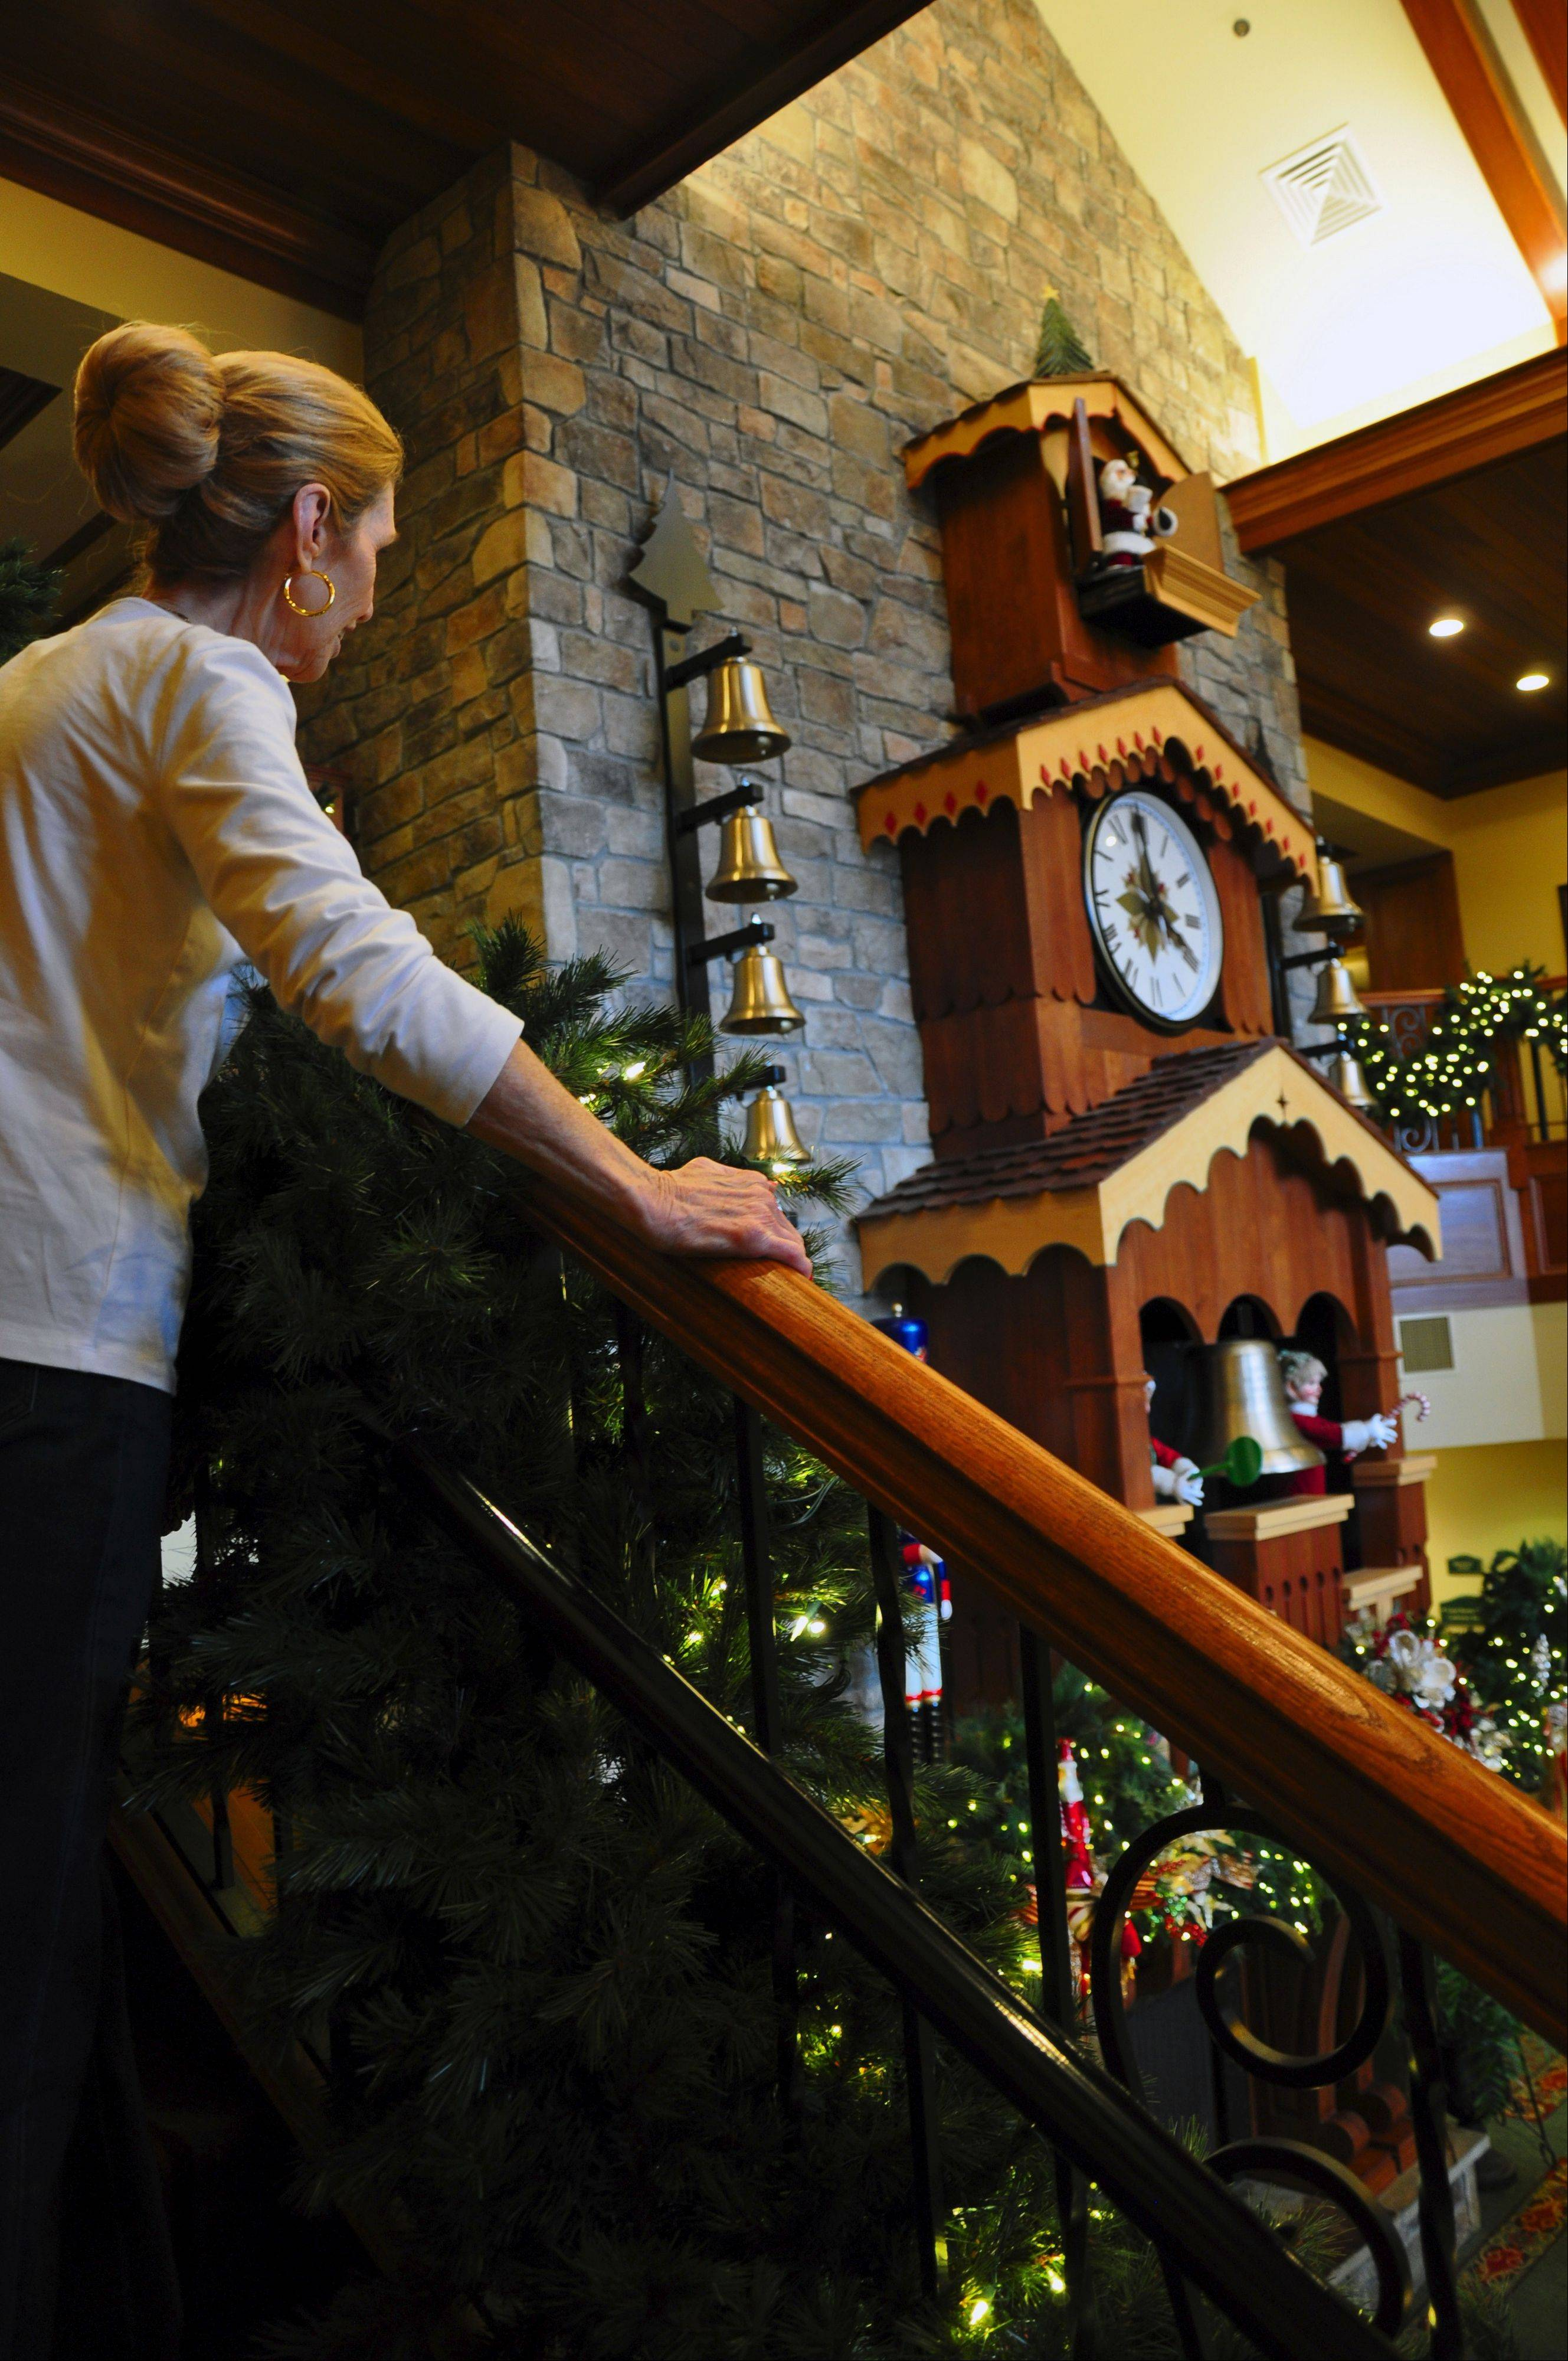 Guests gather around the two-story glockenspiel that plays Christmas carols at the Inn at Christmas Place in Pigeon Forge, Tenn.